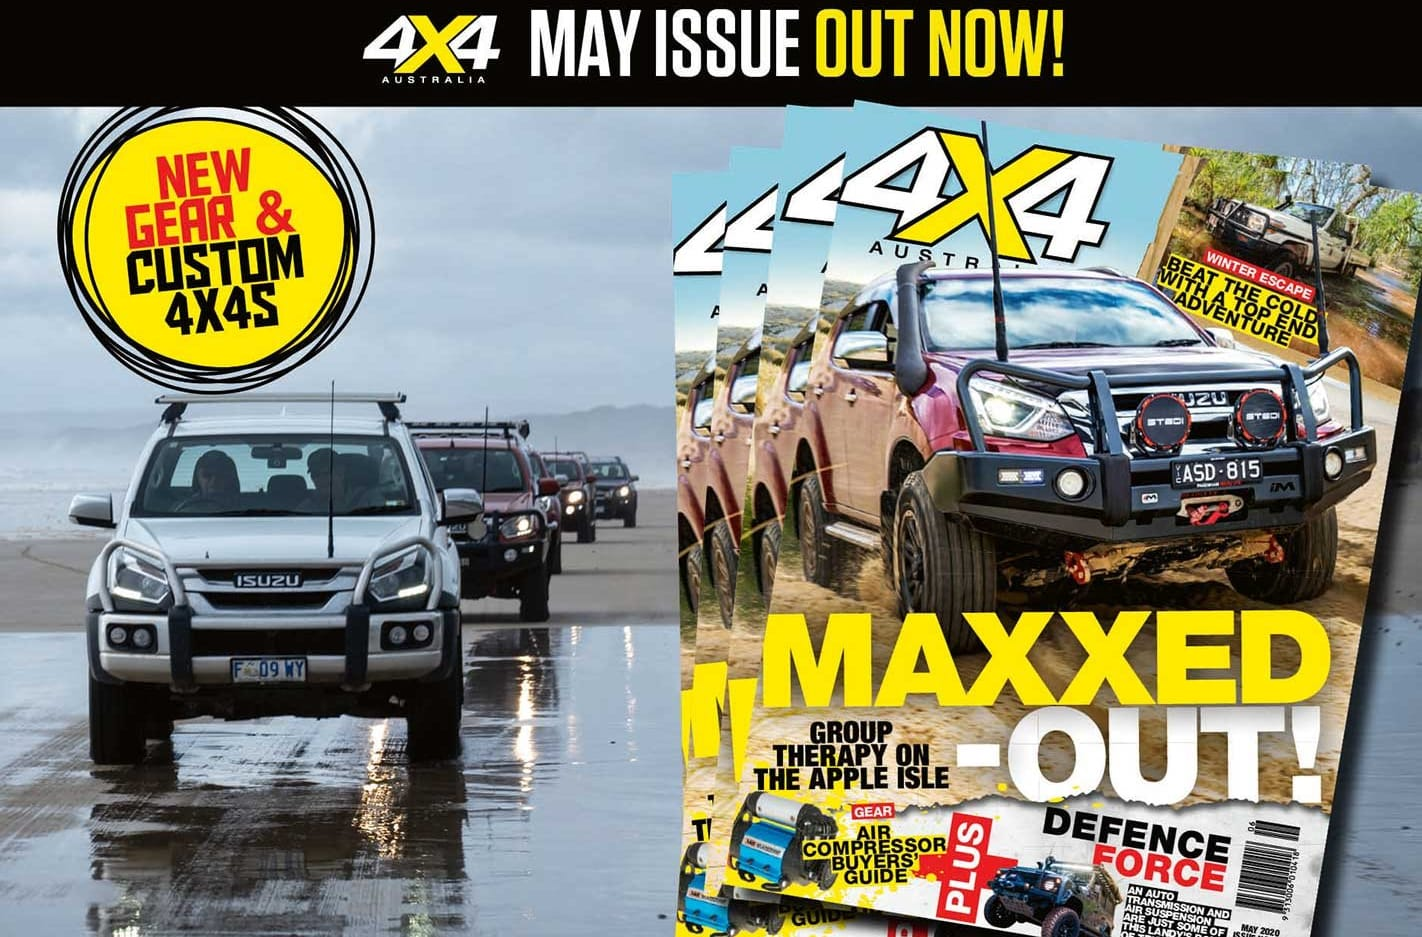 4X4 Australia May 2020 issue preview